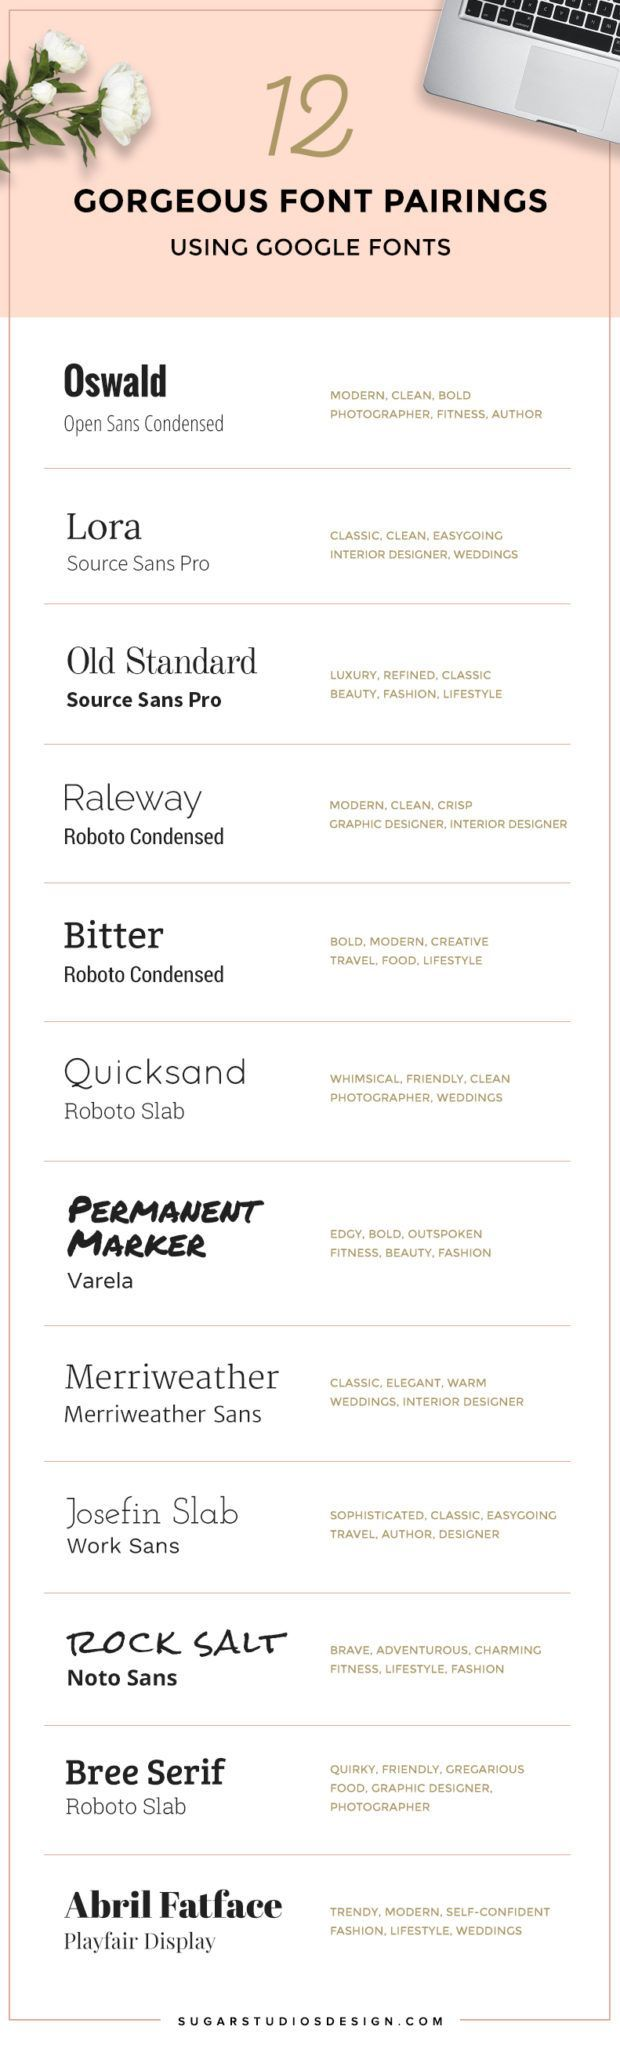 12 Gorgeous Font Pairings using Google Fonts |   Picking fonts for your biz is so important. I put together a free guide to the best font pairings using Google Fonts. Bonus! Find out which fonts are the best choices for your type of business. Repin this t